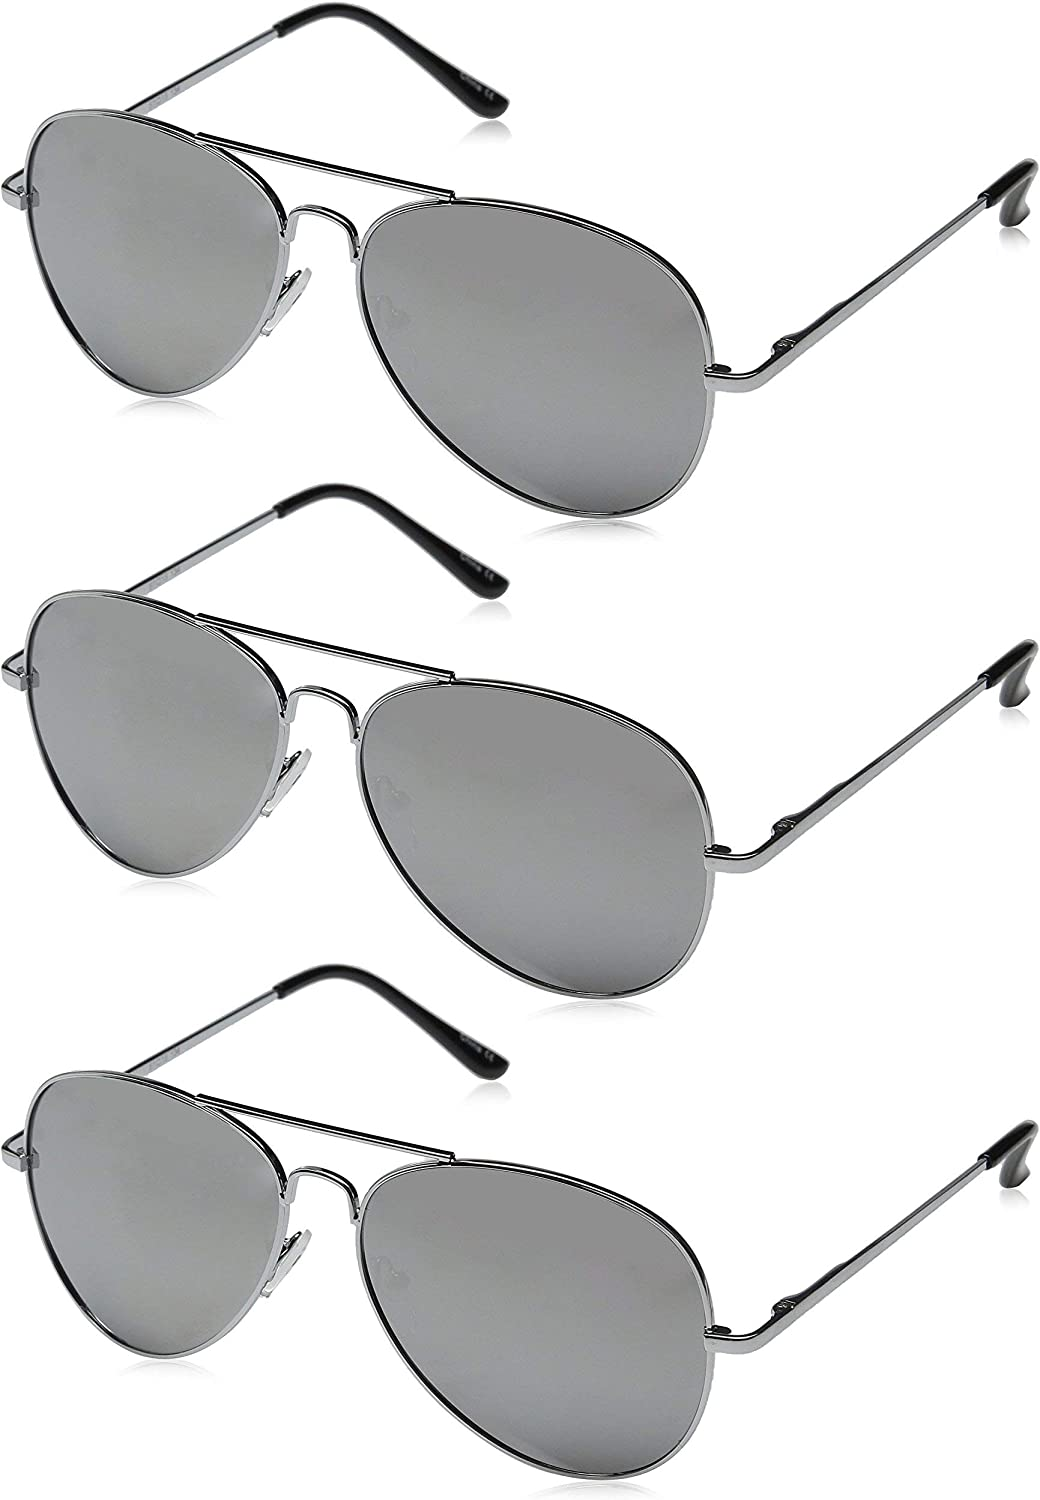 Premium Mirrored Aviator Top OFFicial Gun Loaded w Tem Special price for a limited time Sunglasses Spring